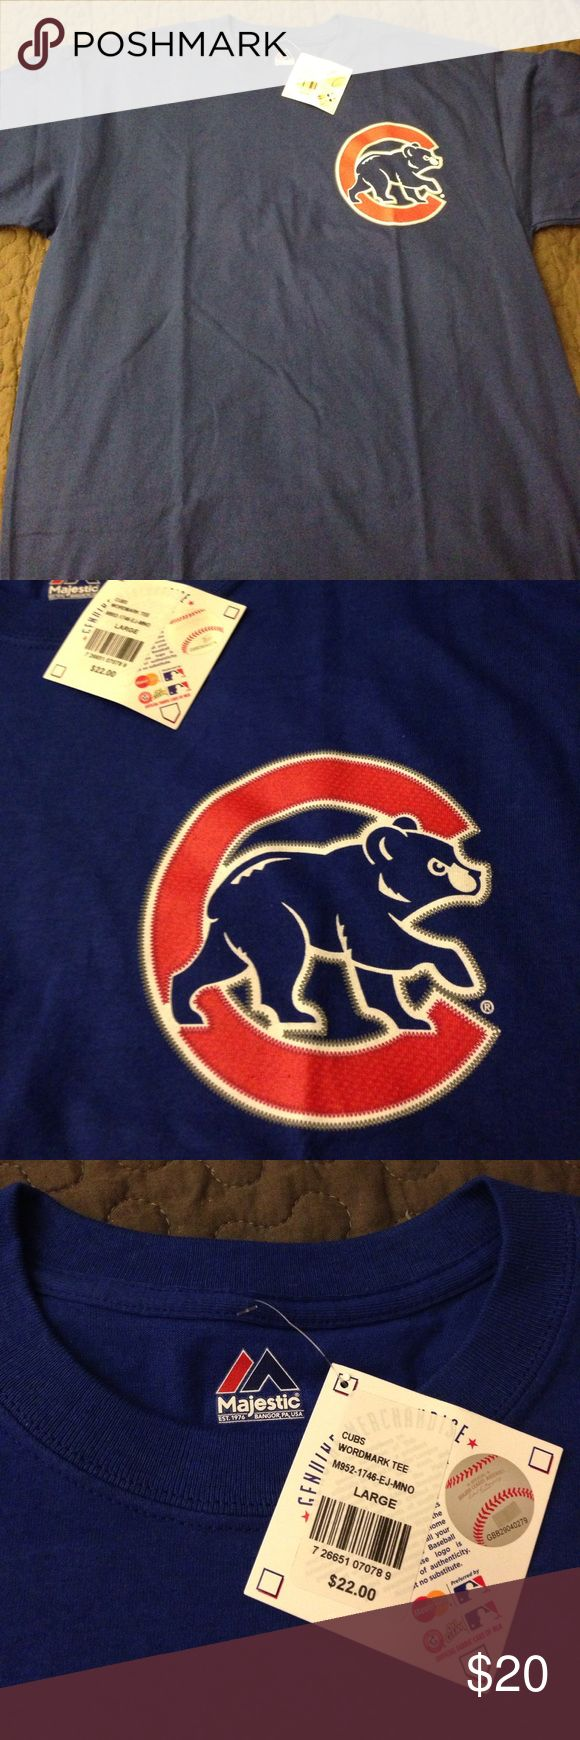 Chicago cubs shirt Brand new Chicago Cubs blue shirt official merchandise of the Chicago Cubs bought it a few years ago never used it brand new with tags Majestic Shirts Tees - Short Sleeve